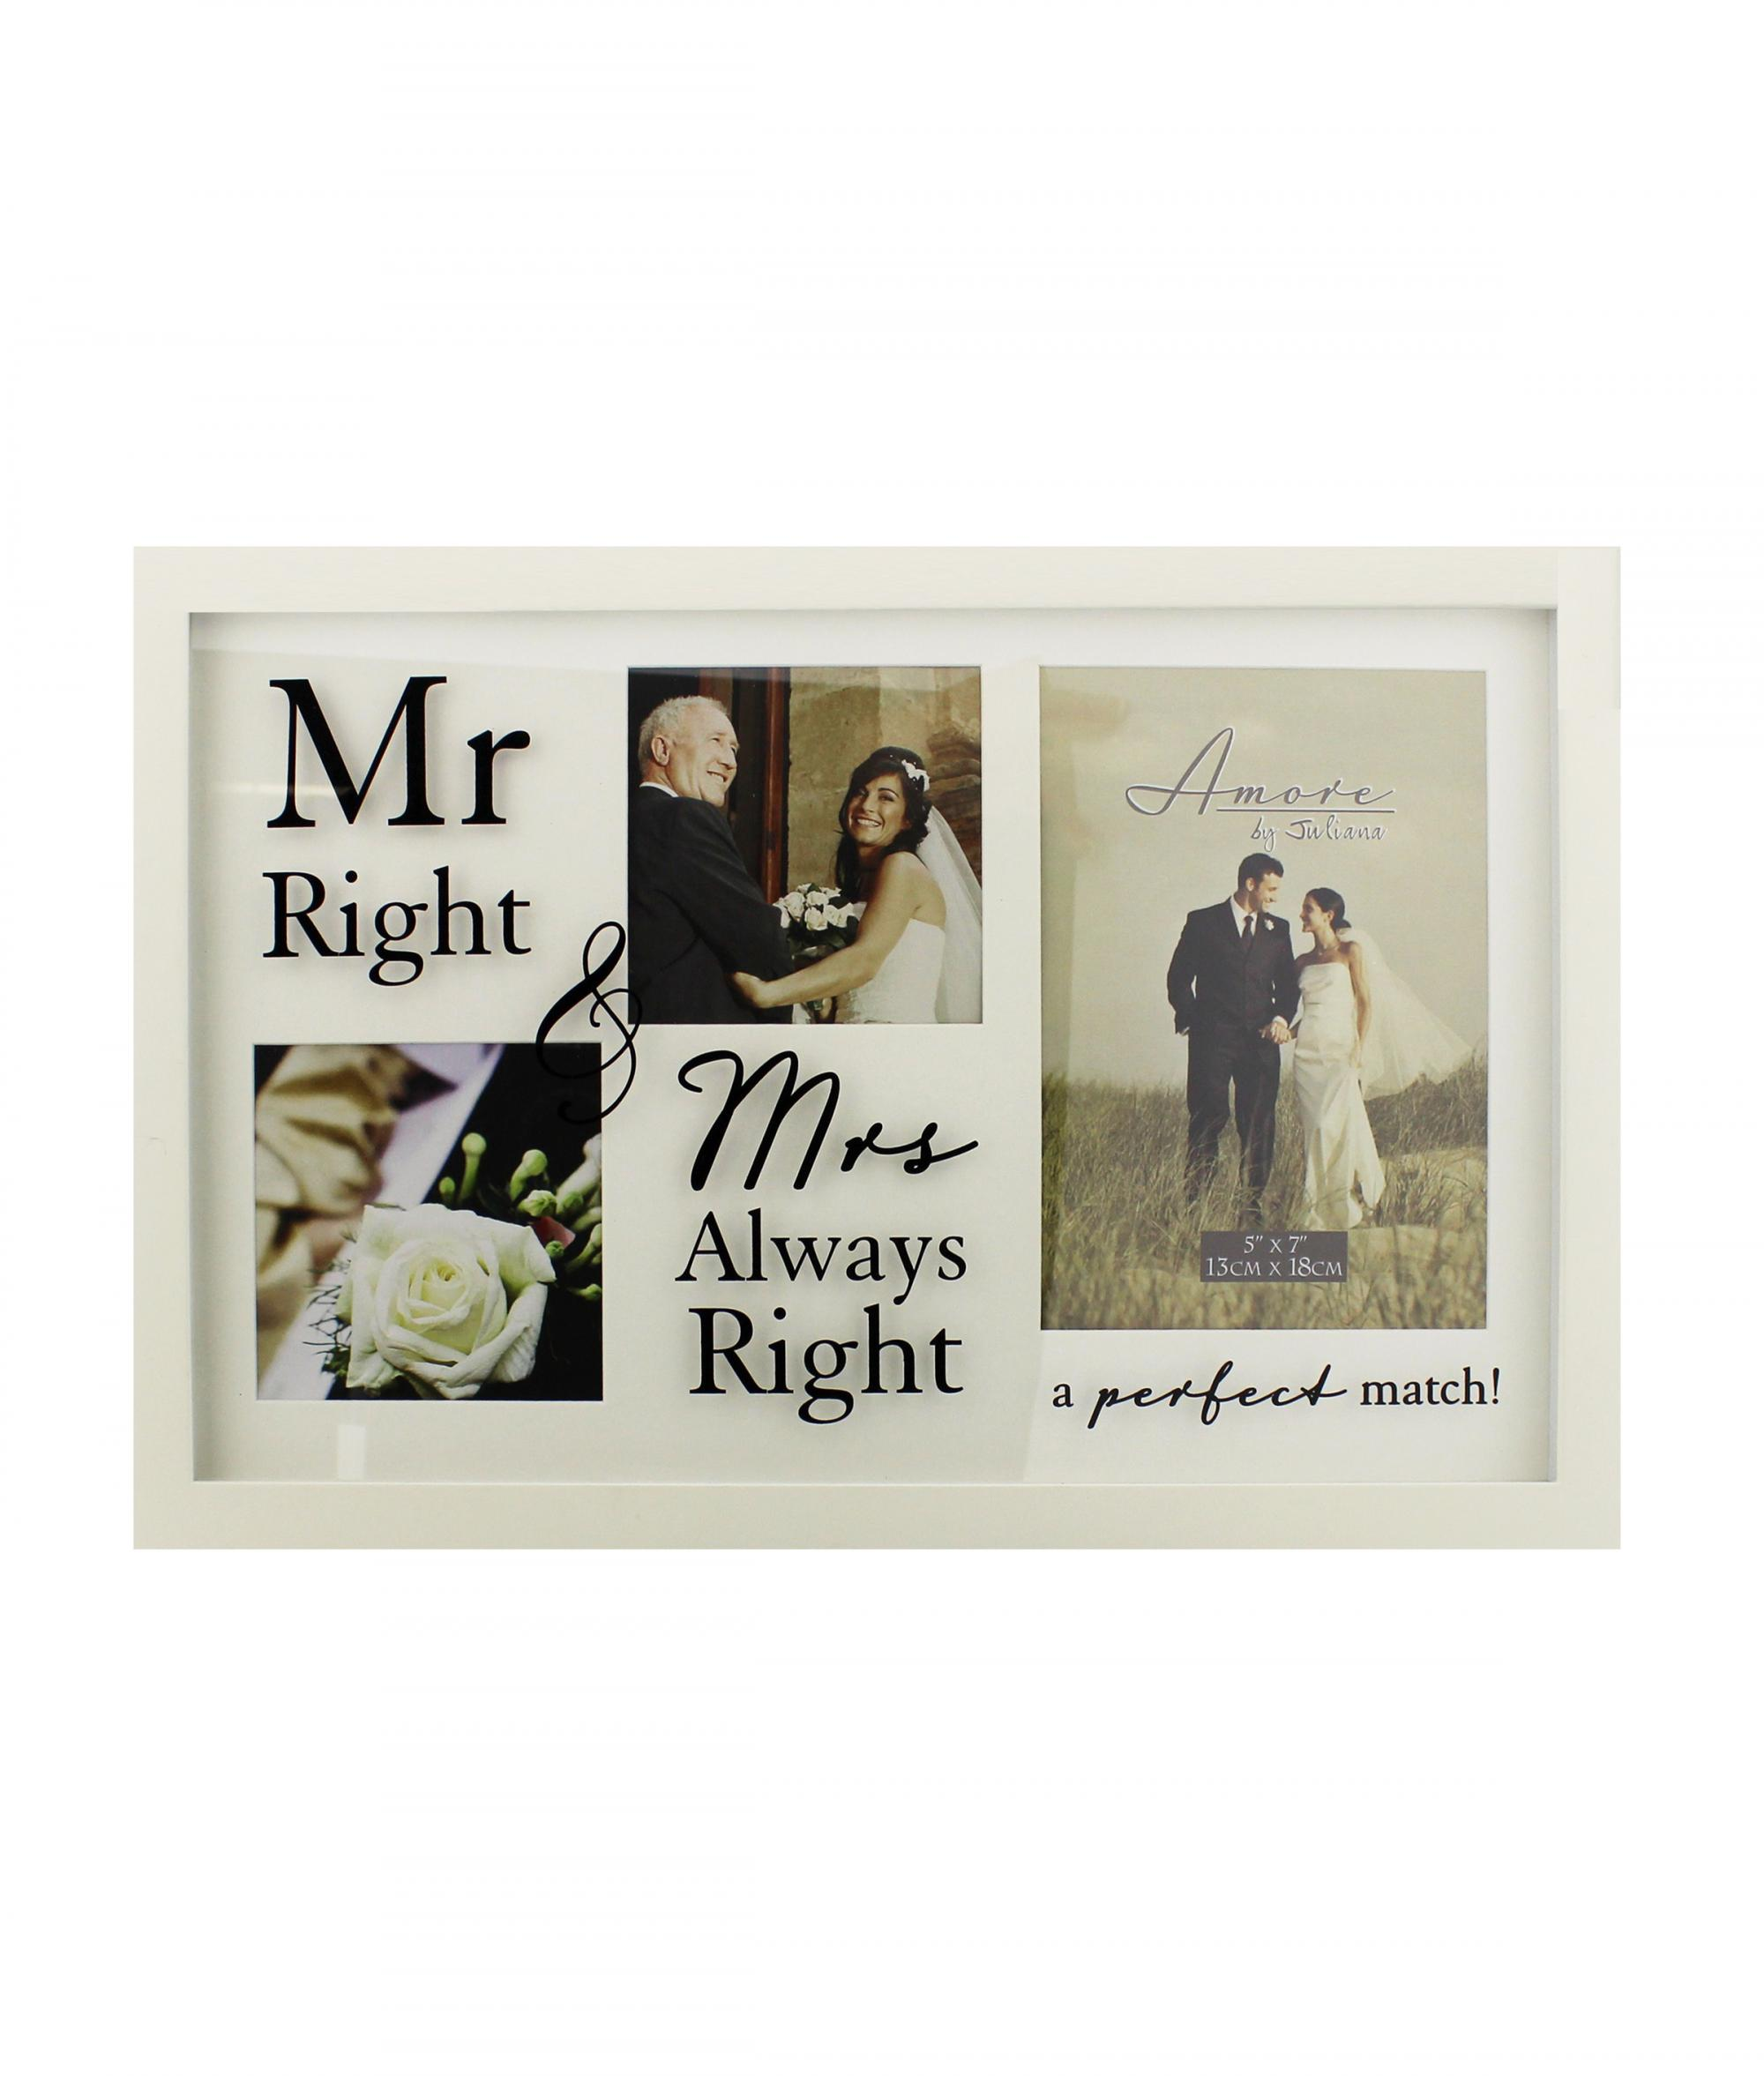 Mr Right & Mrs Always Right Frame | Cancer Research UK Online Shop